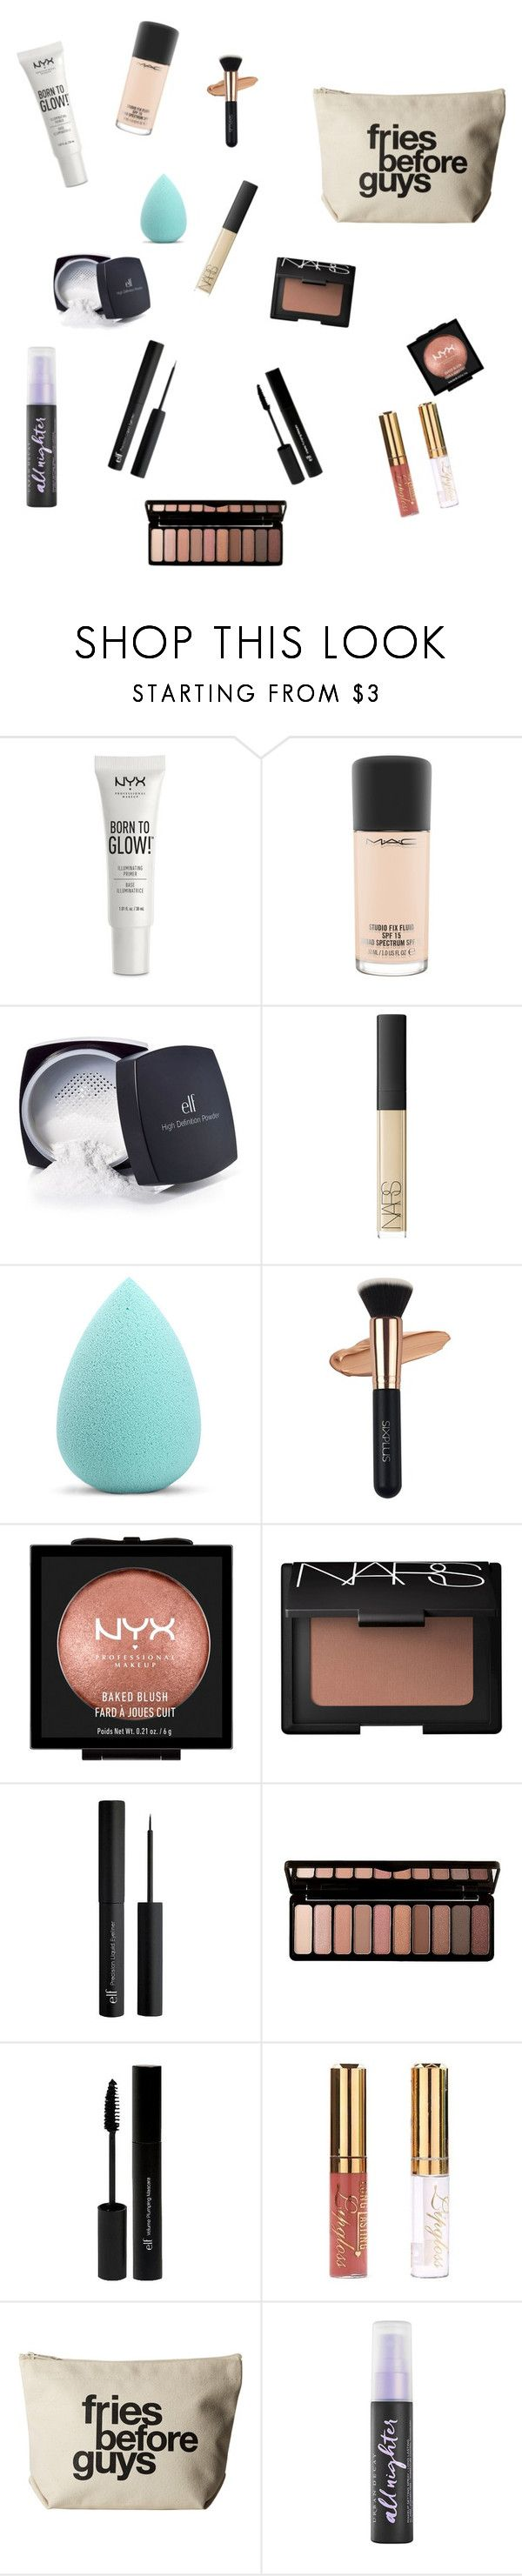 """Natural Look"" by abbyharper on Polyvore featuring NYX, MAC Cosmetics, e.l.f., NARS Cosmetics, My Makeup Brush Set, Dogeared and Urban Decay"